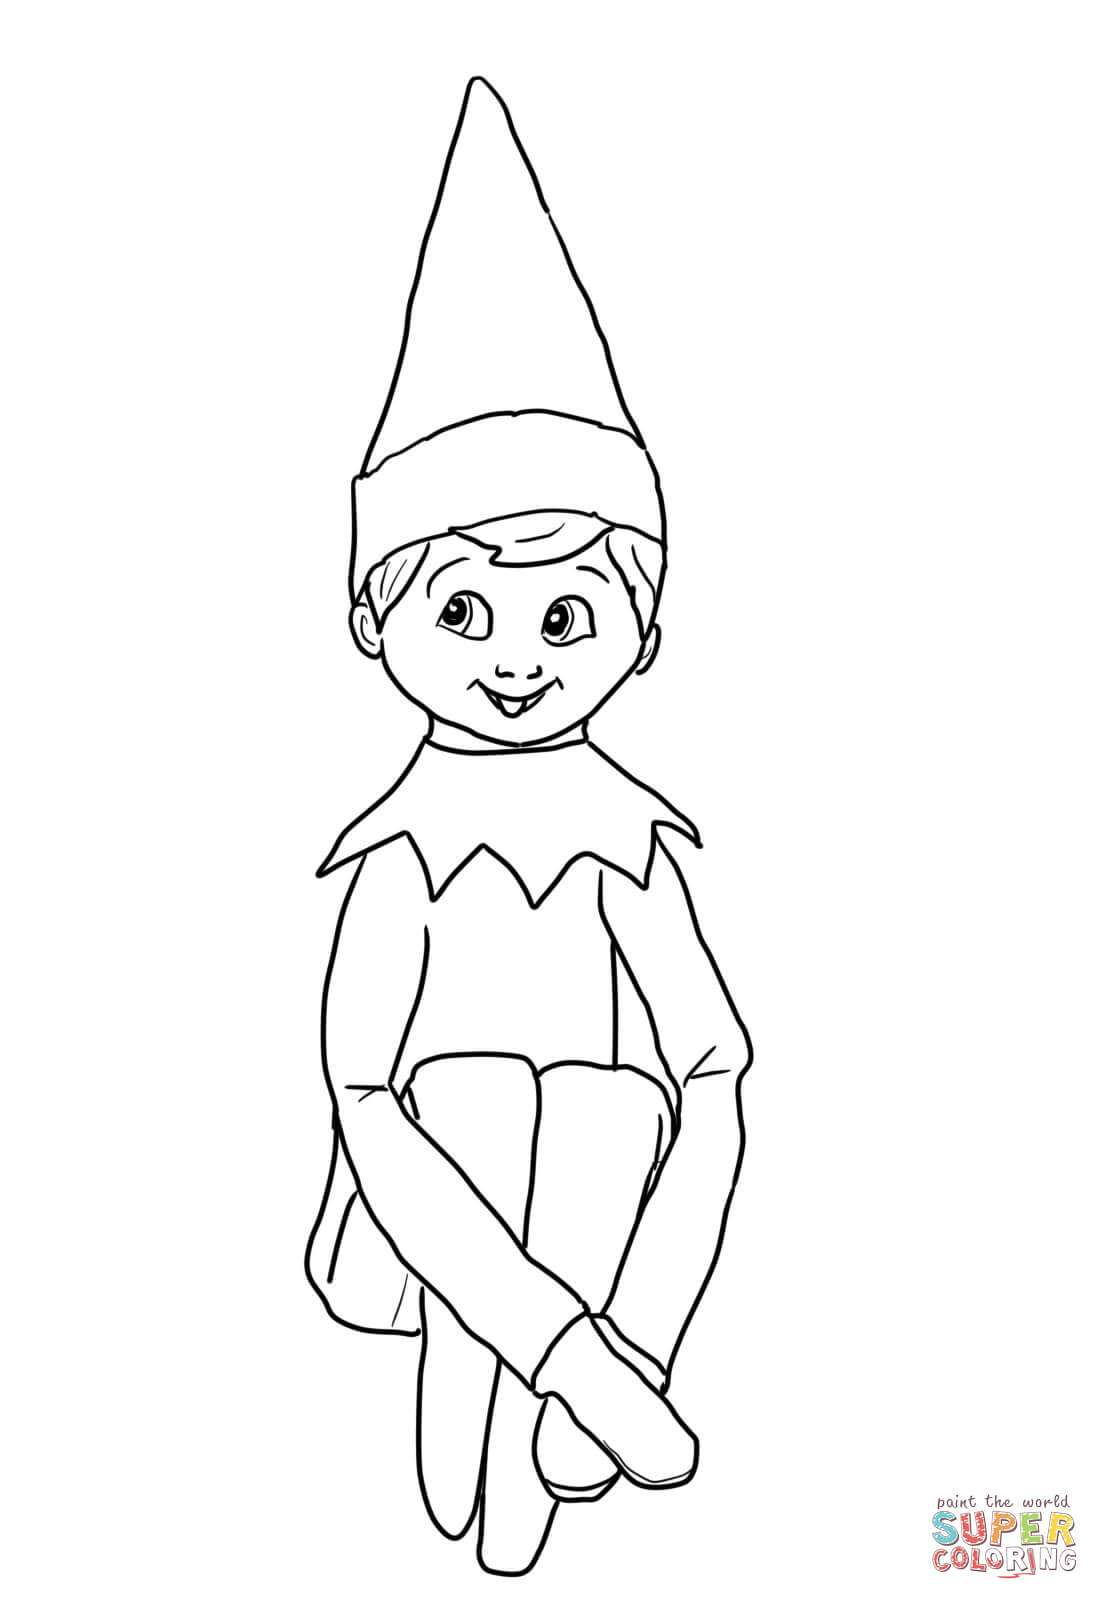 Elf black and white elf on the shelf clipart cliparts databases.